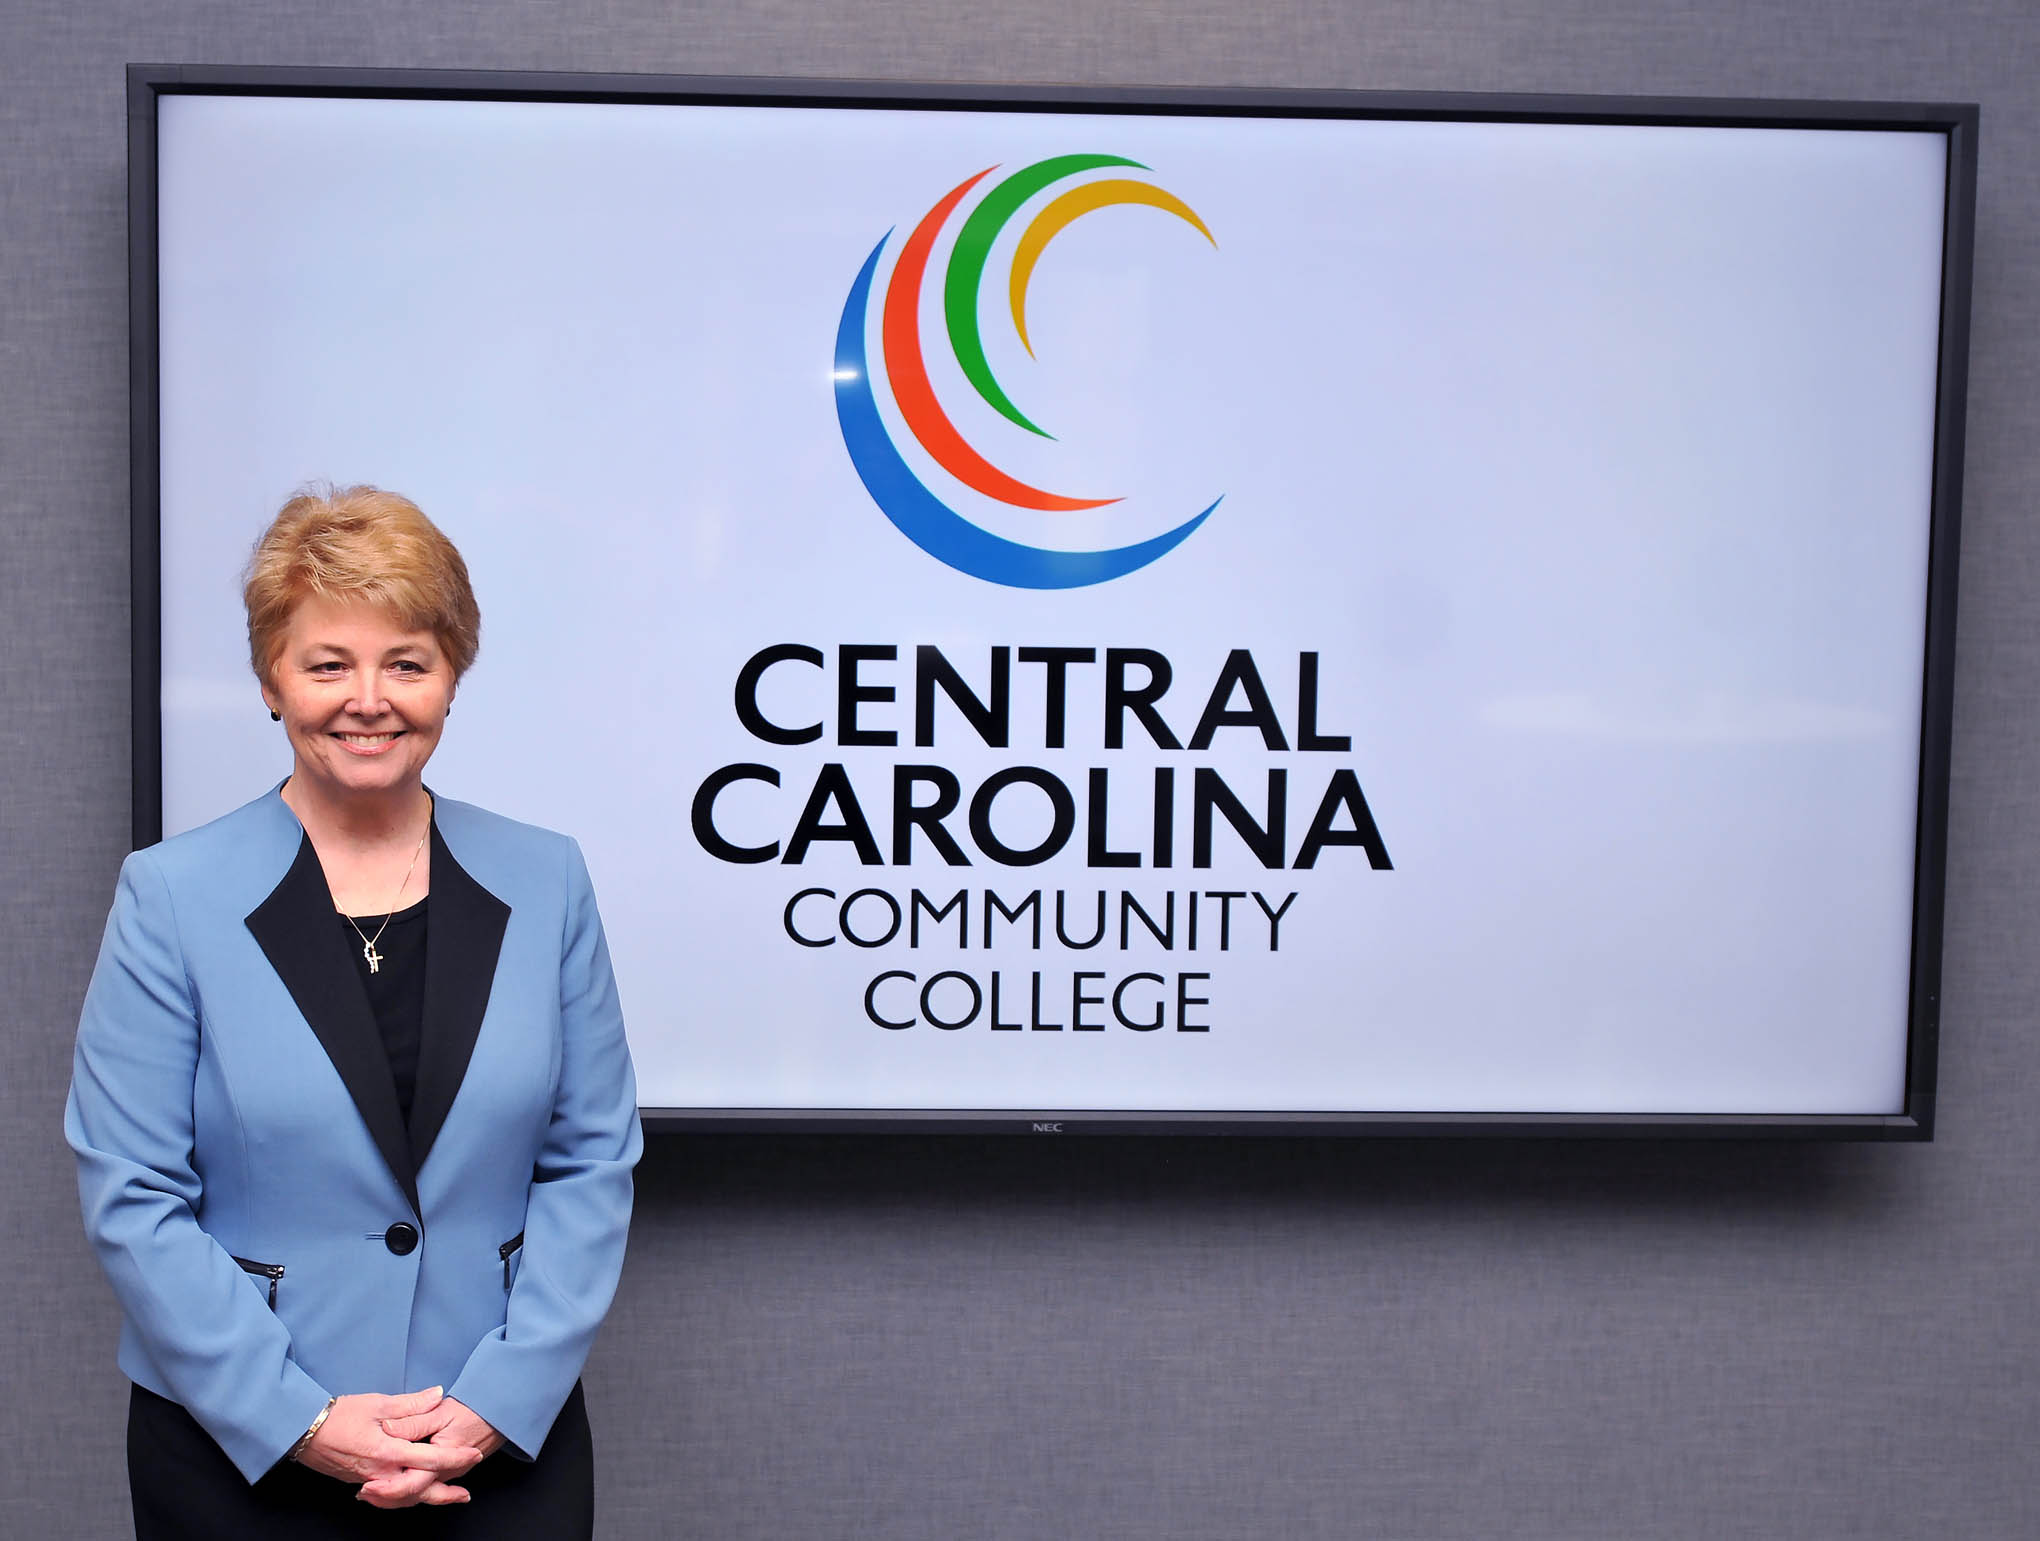 Dr. Chapman begins presidency at CCCC